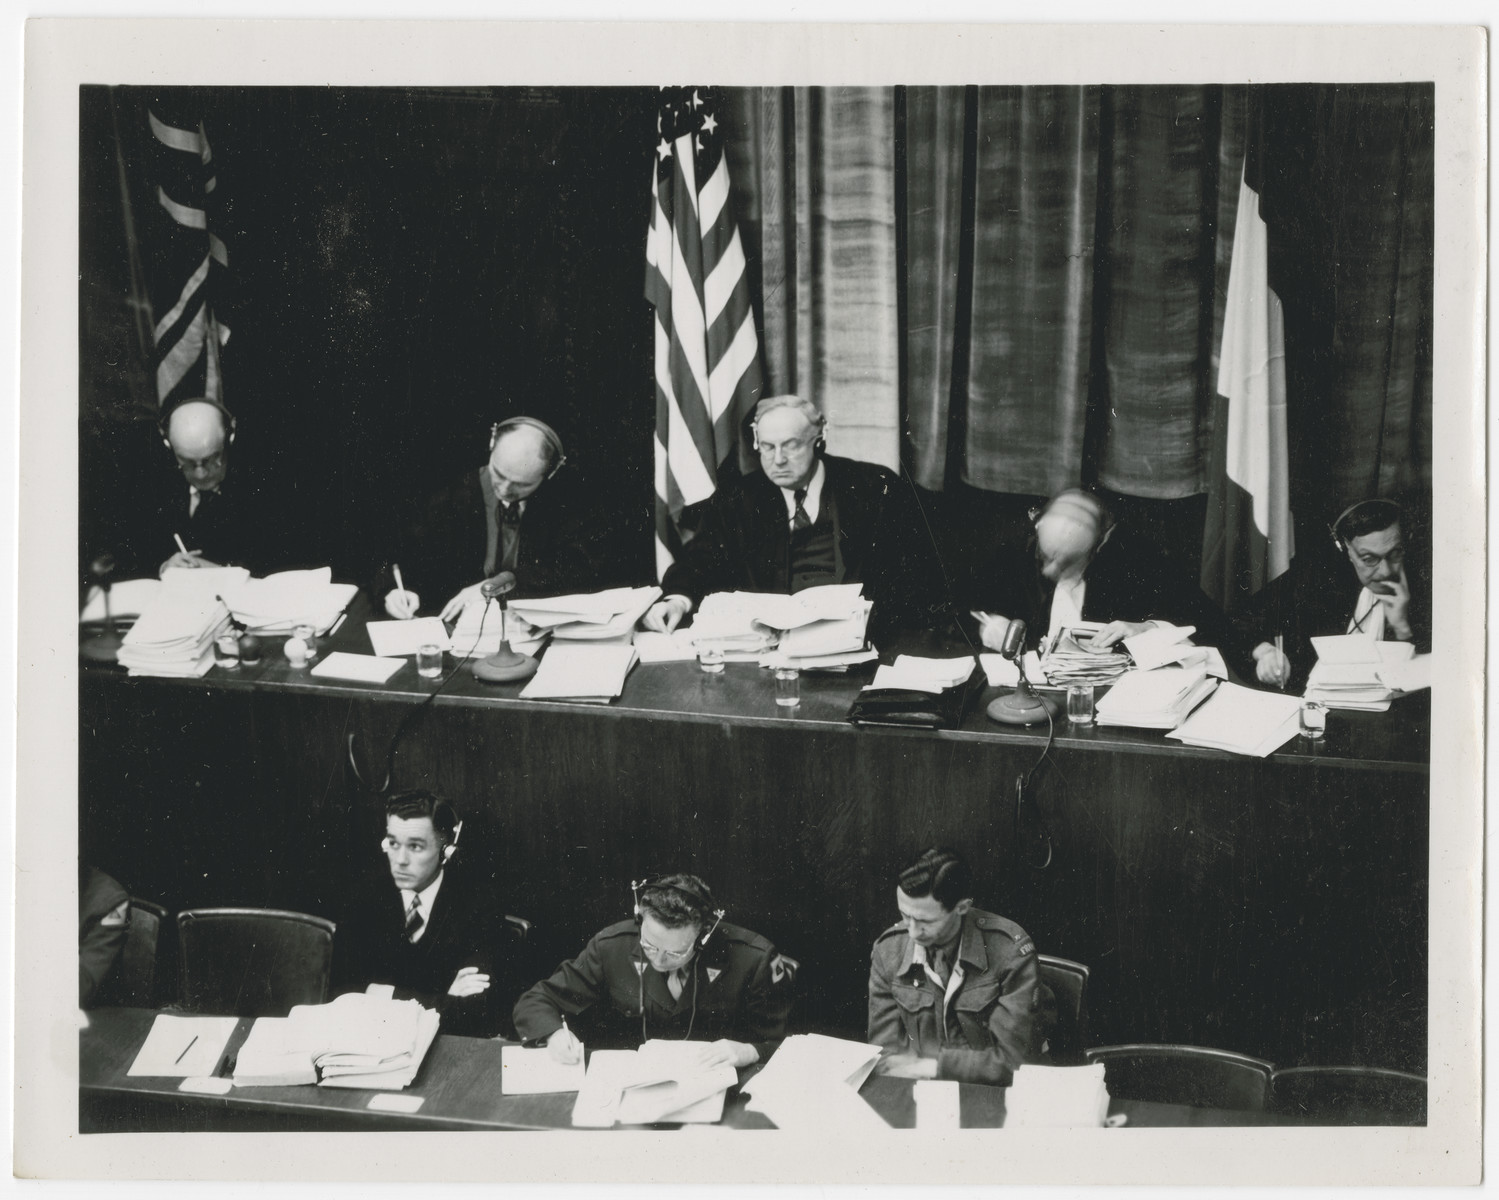 The justices work at their bench during the International Military Tribunal in Nuremberg.